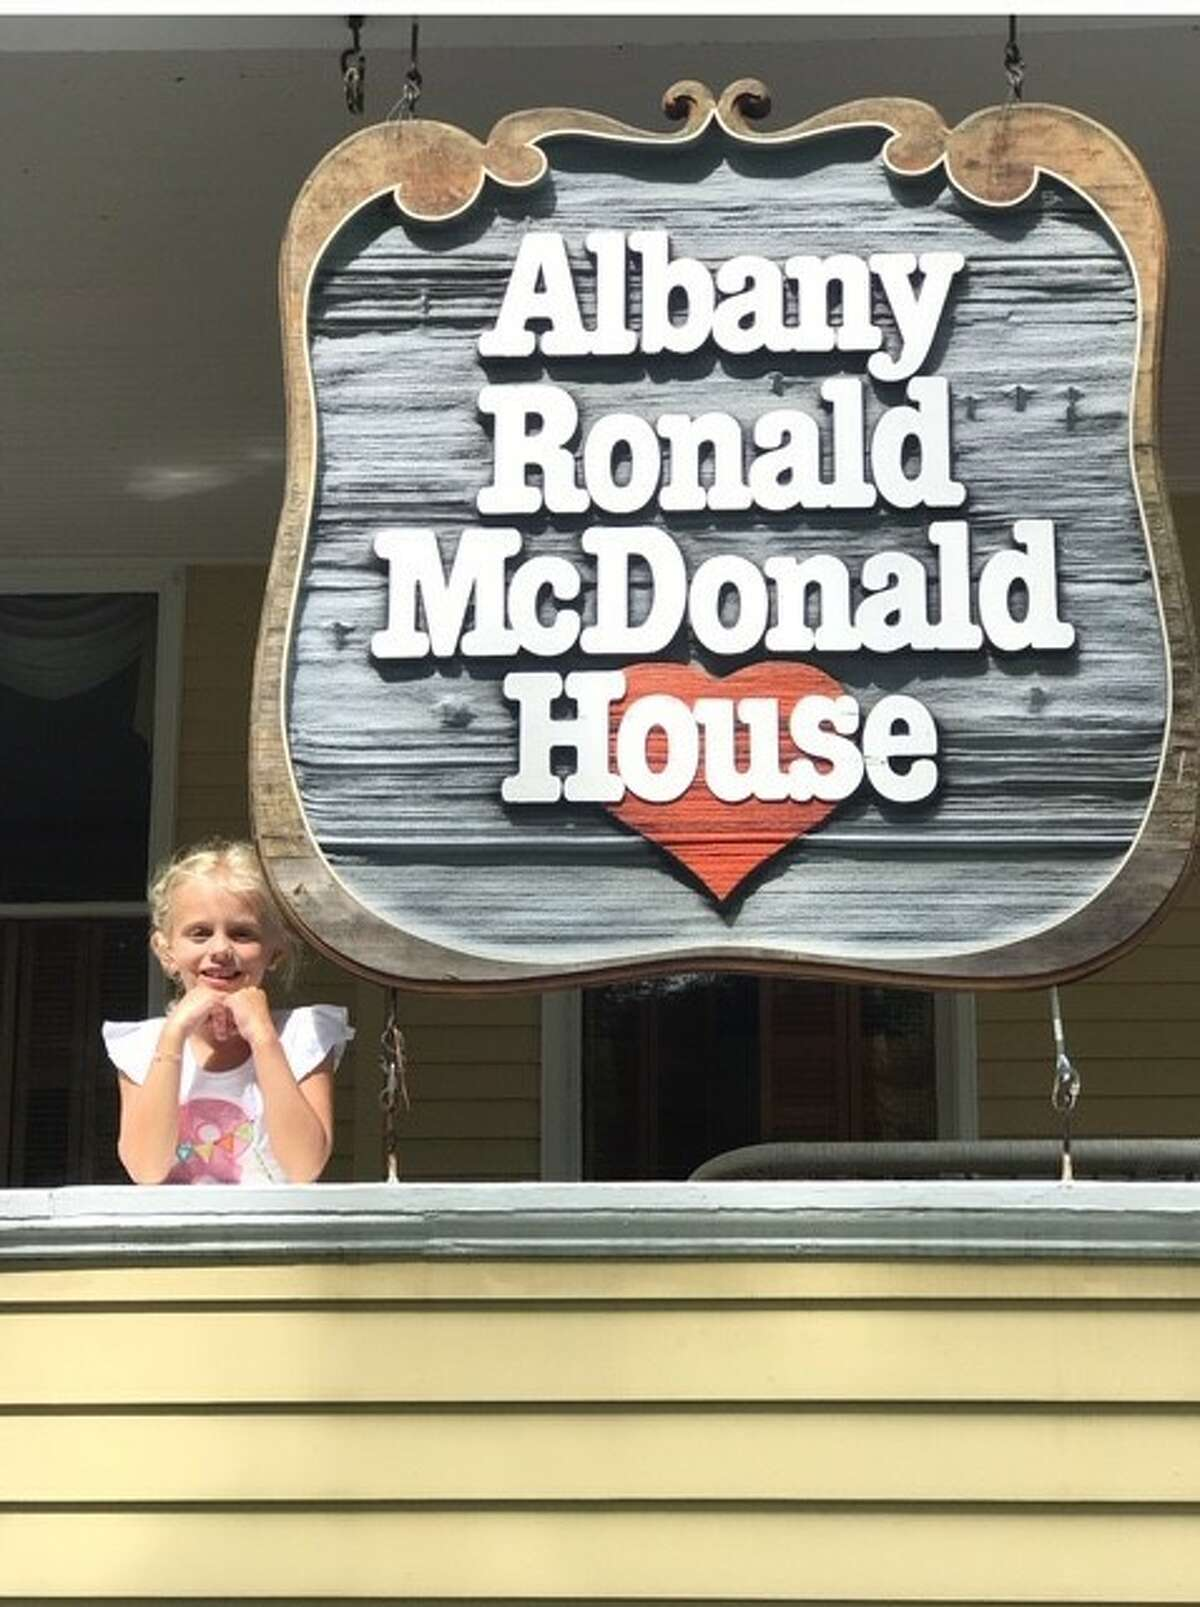 For her 8th birthday on Aug. 28, Ryhan Hotaling of Delmar wanted to have a virtual (and real) lemonade stand to raise money for the kids at the Albany Ronald McDonald House. With the help of her parents Lori and Chad Hotaling her lemonade stands were created for her birthday, and she raised more than $1,400 which she brought to the House. This photo was provided by her grandparents Dr. John and Linda Metallo of Slingerlands.